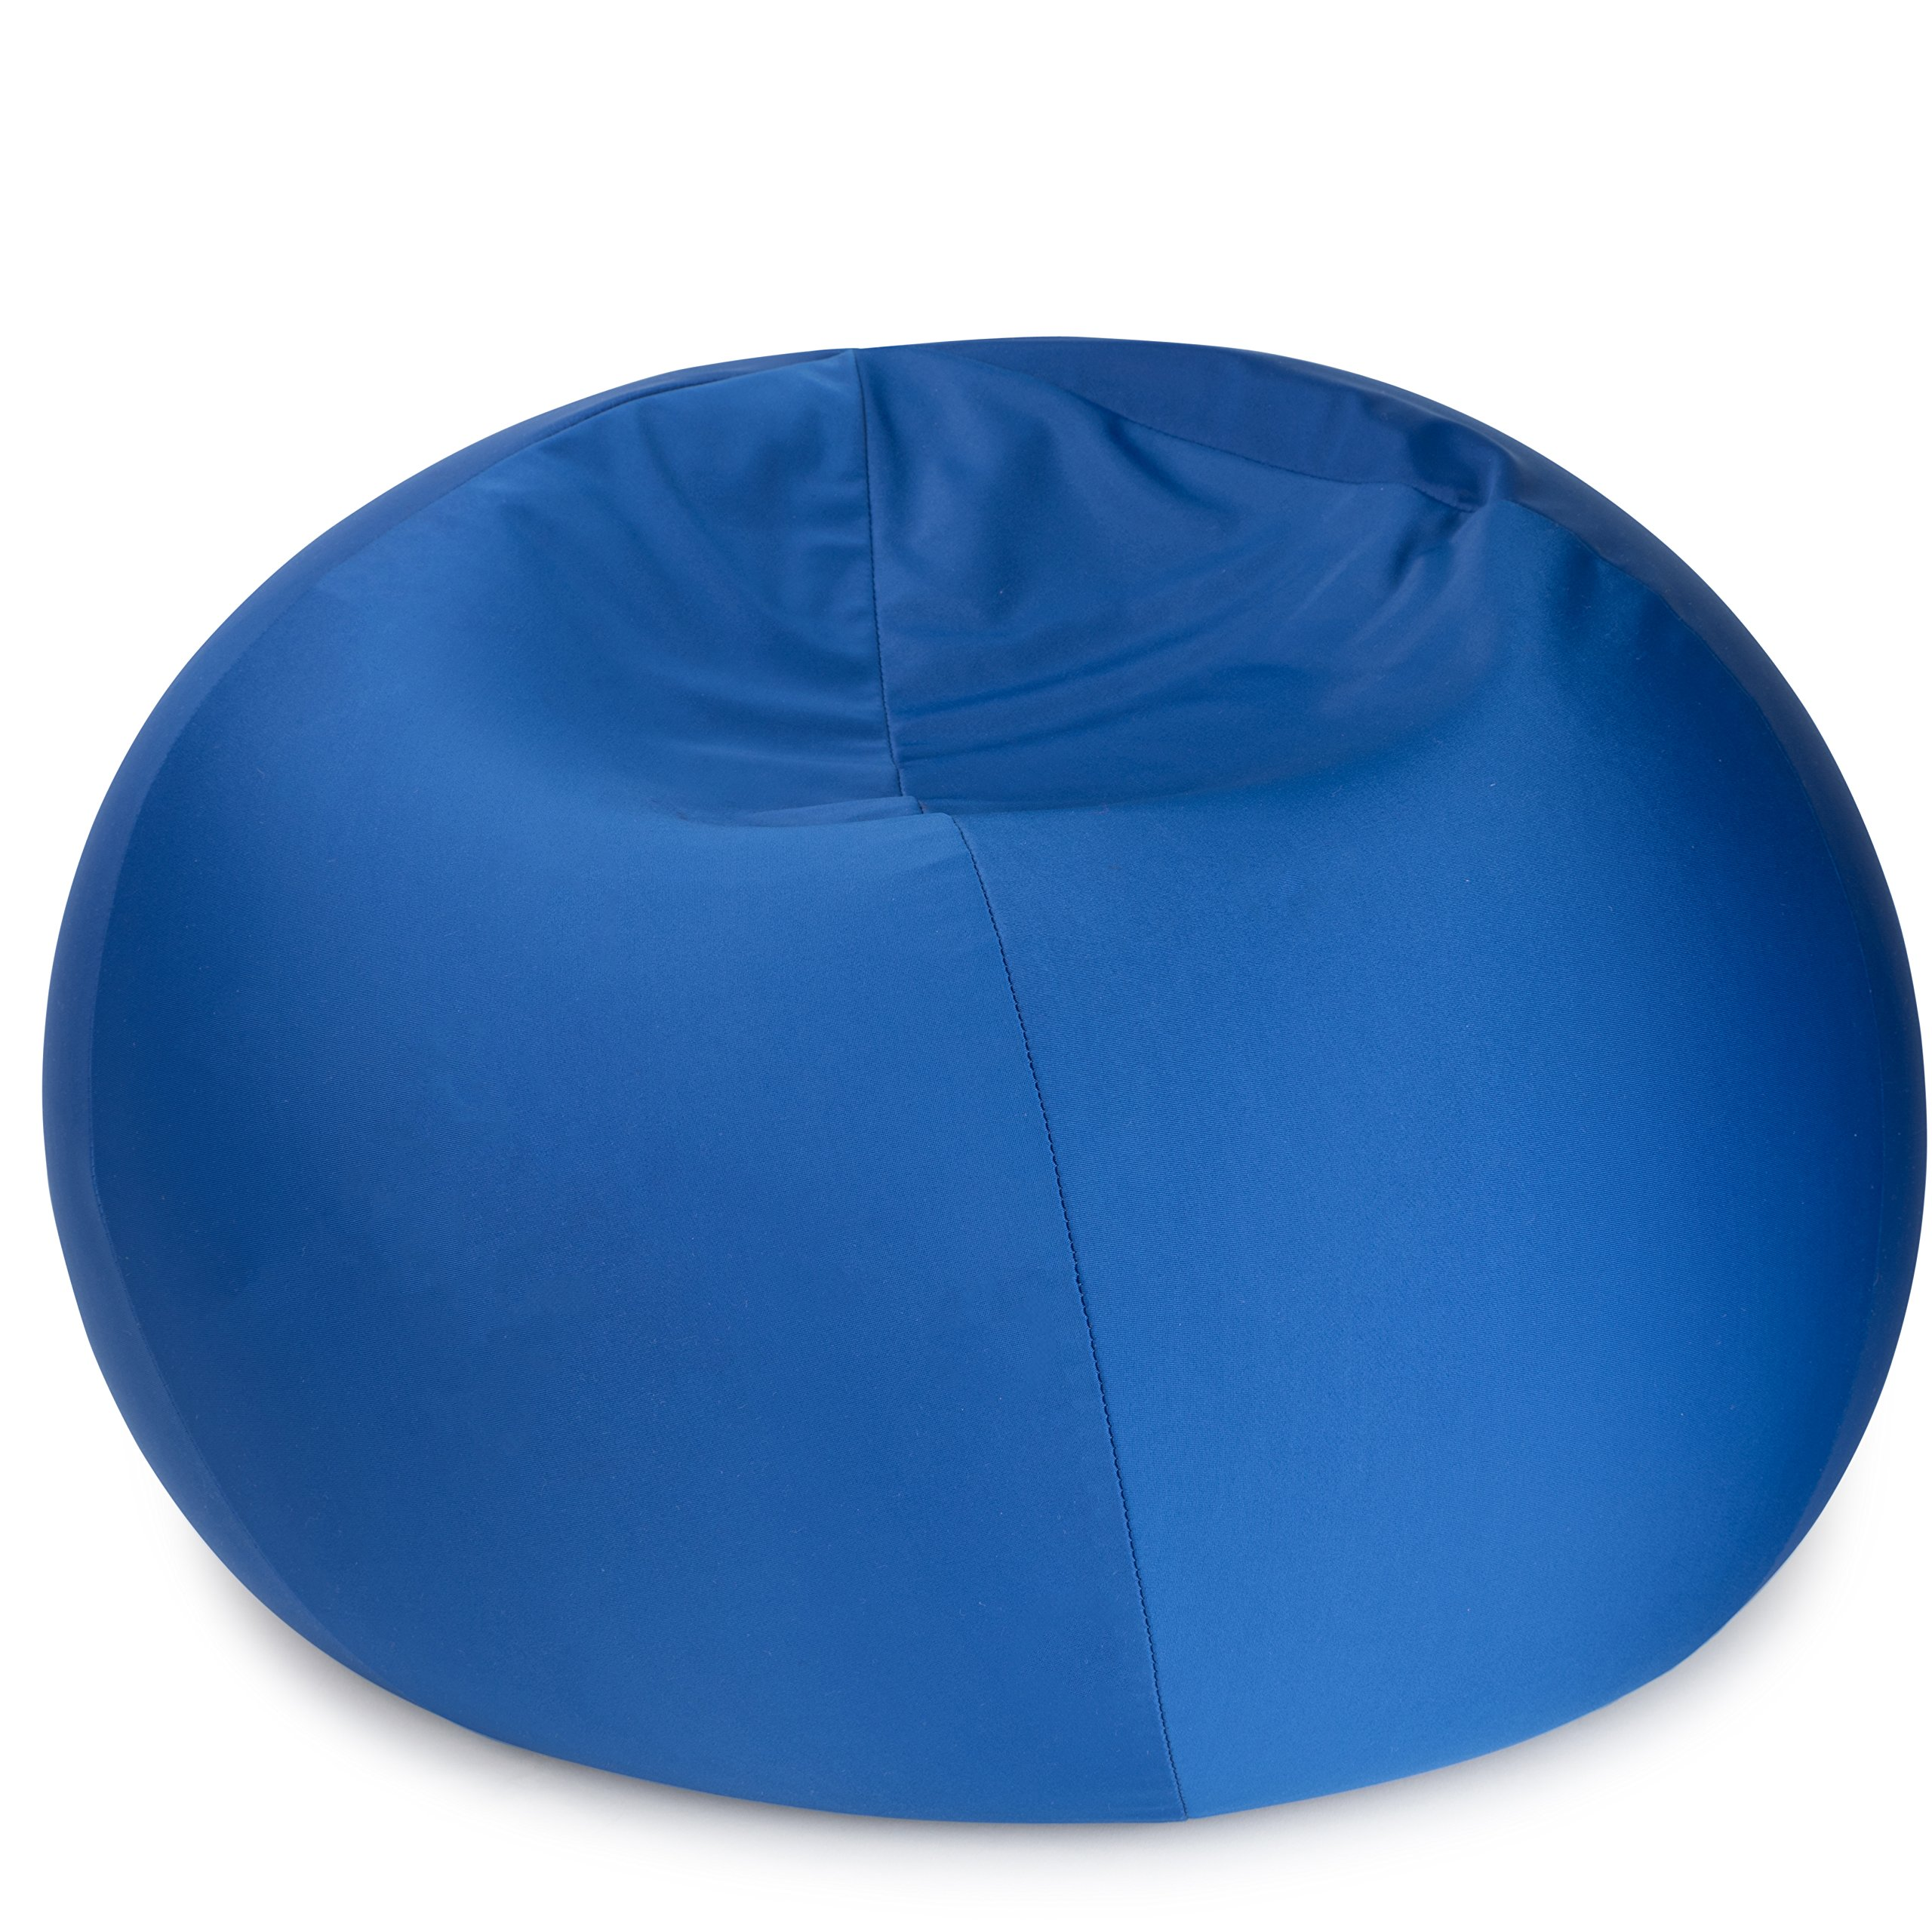 "Dash Sensations Blue Bean Bag Chair for Kids with Removable Machine Washable Cover - Tactile and Sensory for Sitting, Lounging and Playing - 18'' x 15'' (60"" Circumference) – by"